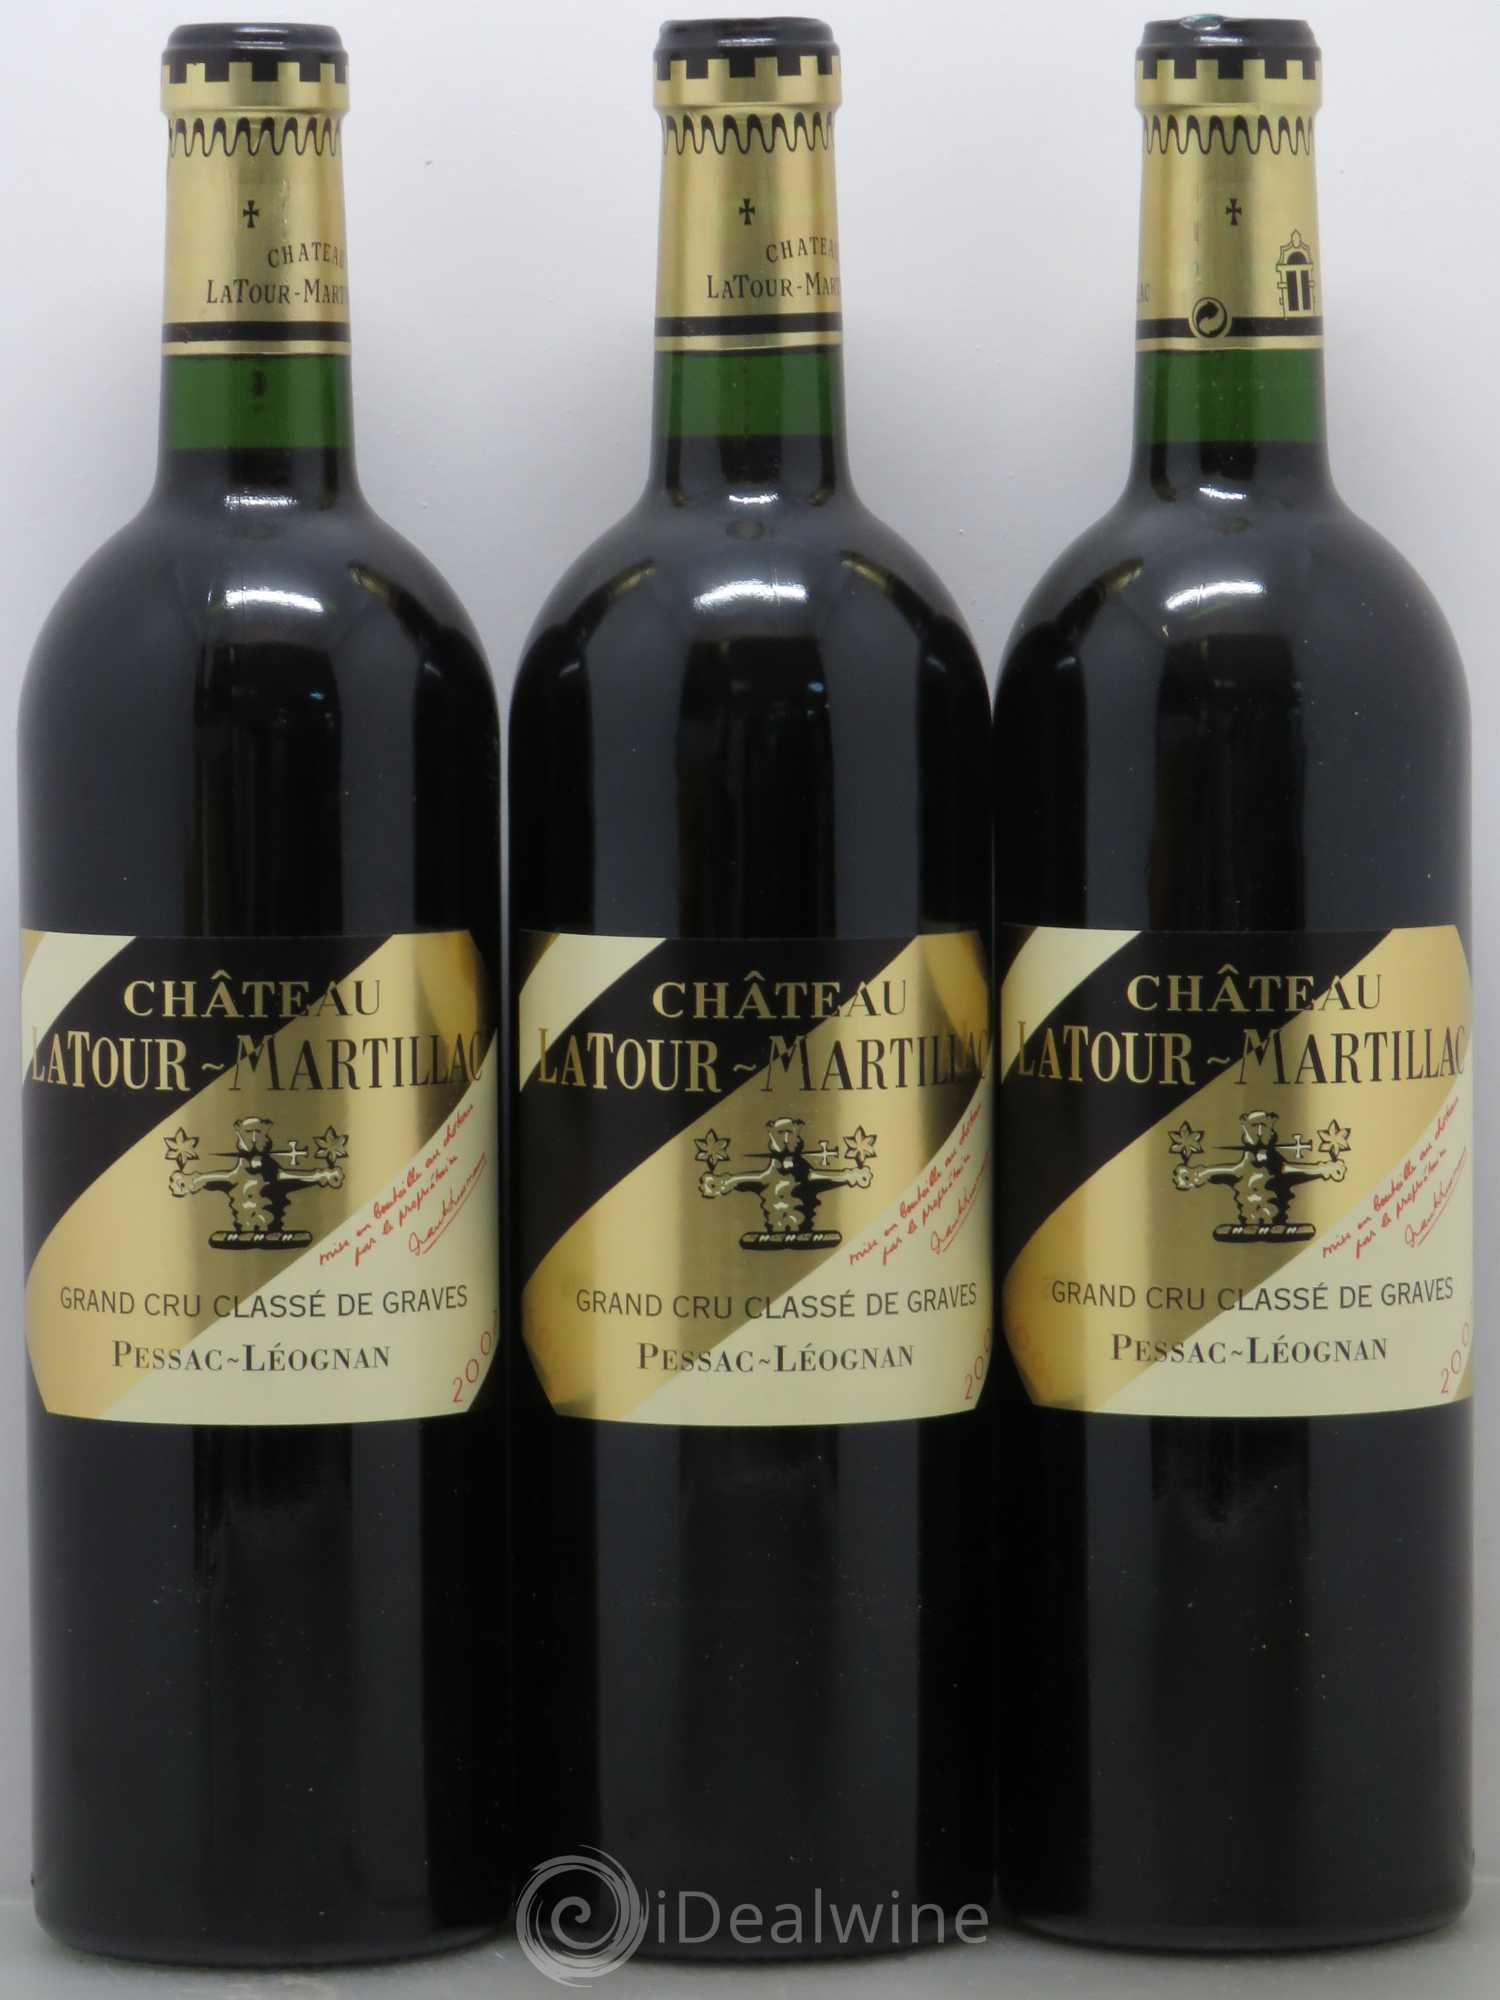 acheter ch teau latour martillac cru class de graves 2007 lot 12565. Black Bedroom Furniture Sets. Home Design Ideas